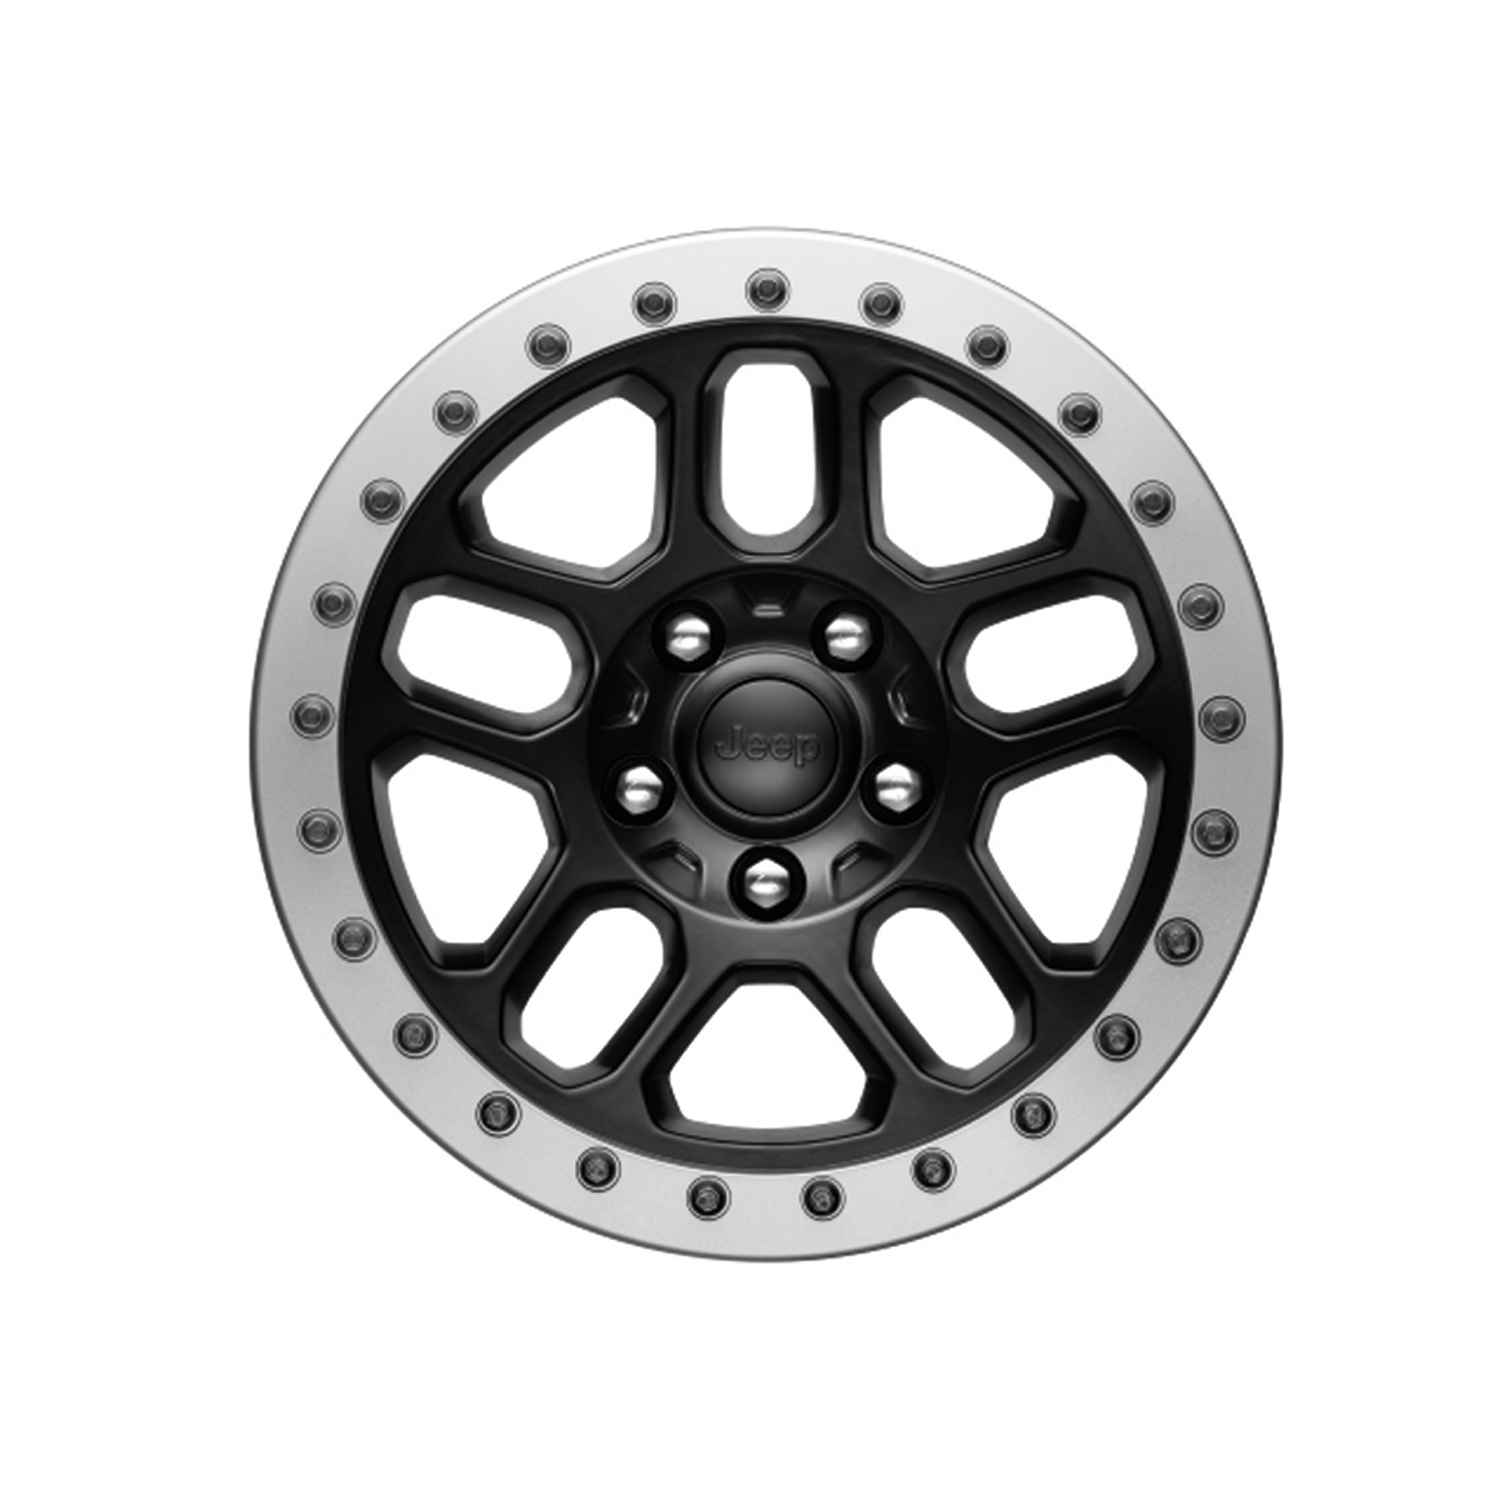 OEM 2021 Jeep Gladiator 17 Beadlock-capable Wheel